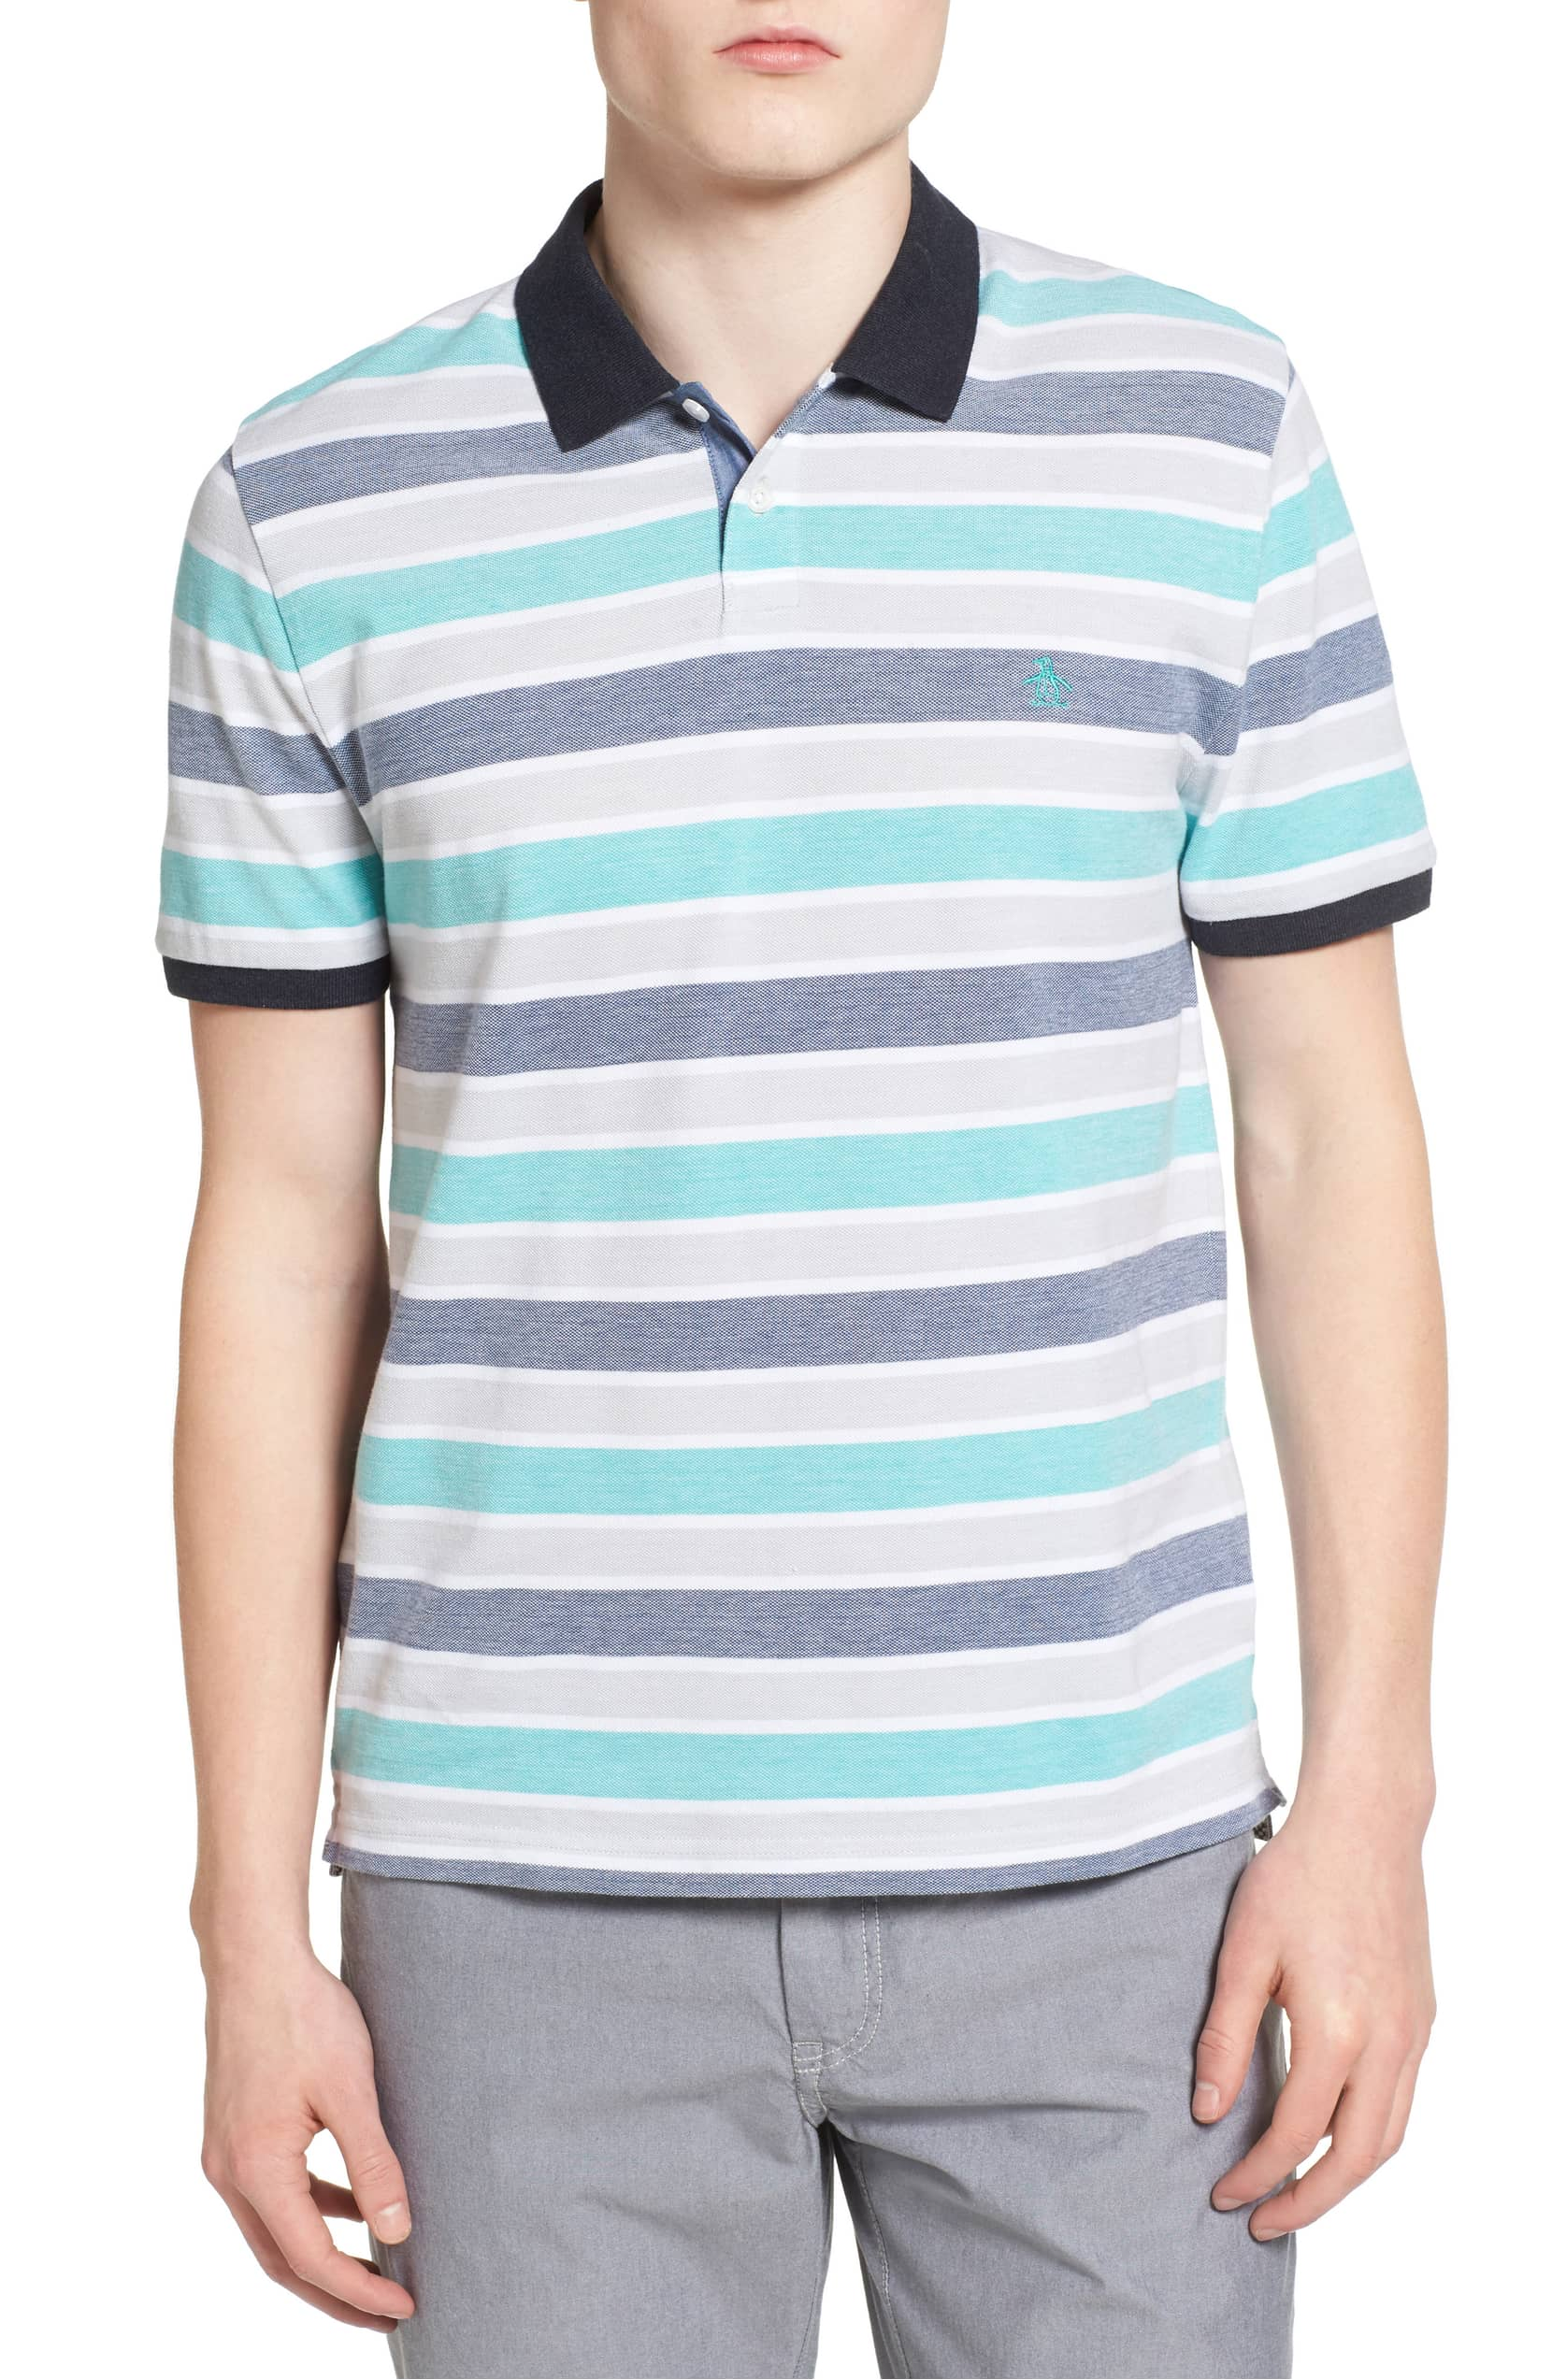 bab9ecdd Details about Original Penguin NEW Blue Mens Size Small S Birdseye Wide  Stripe Polo $69- #994